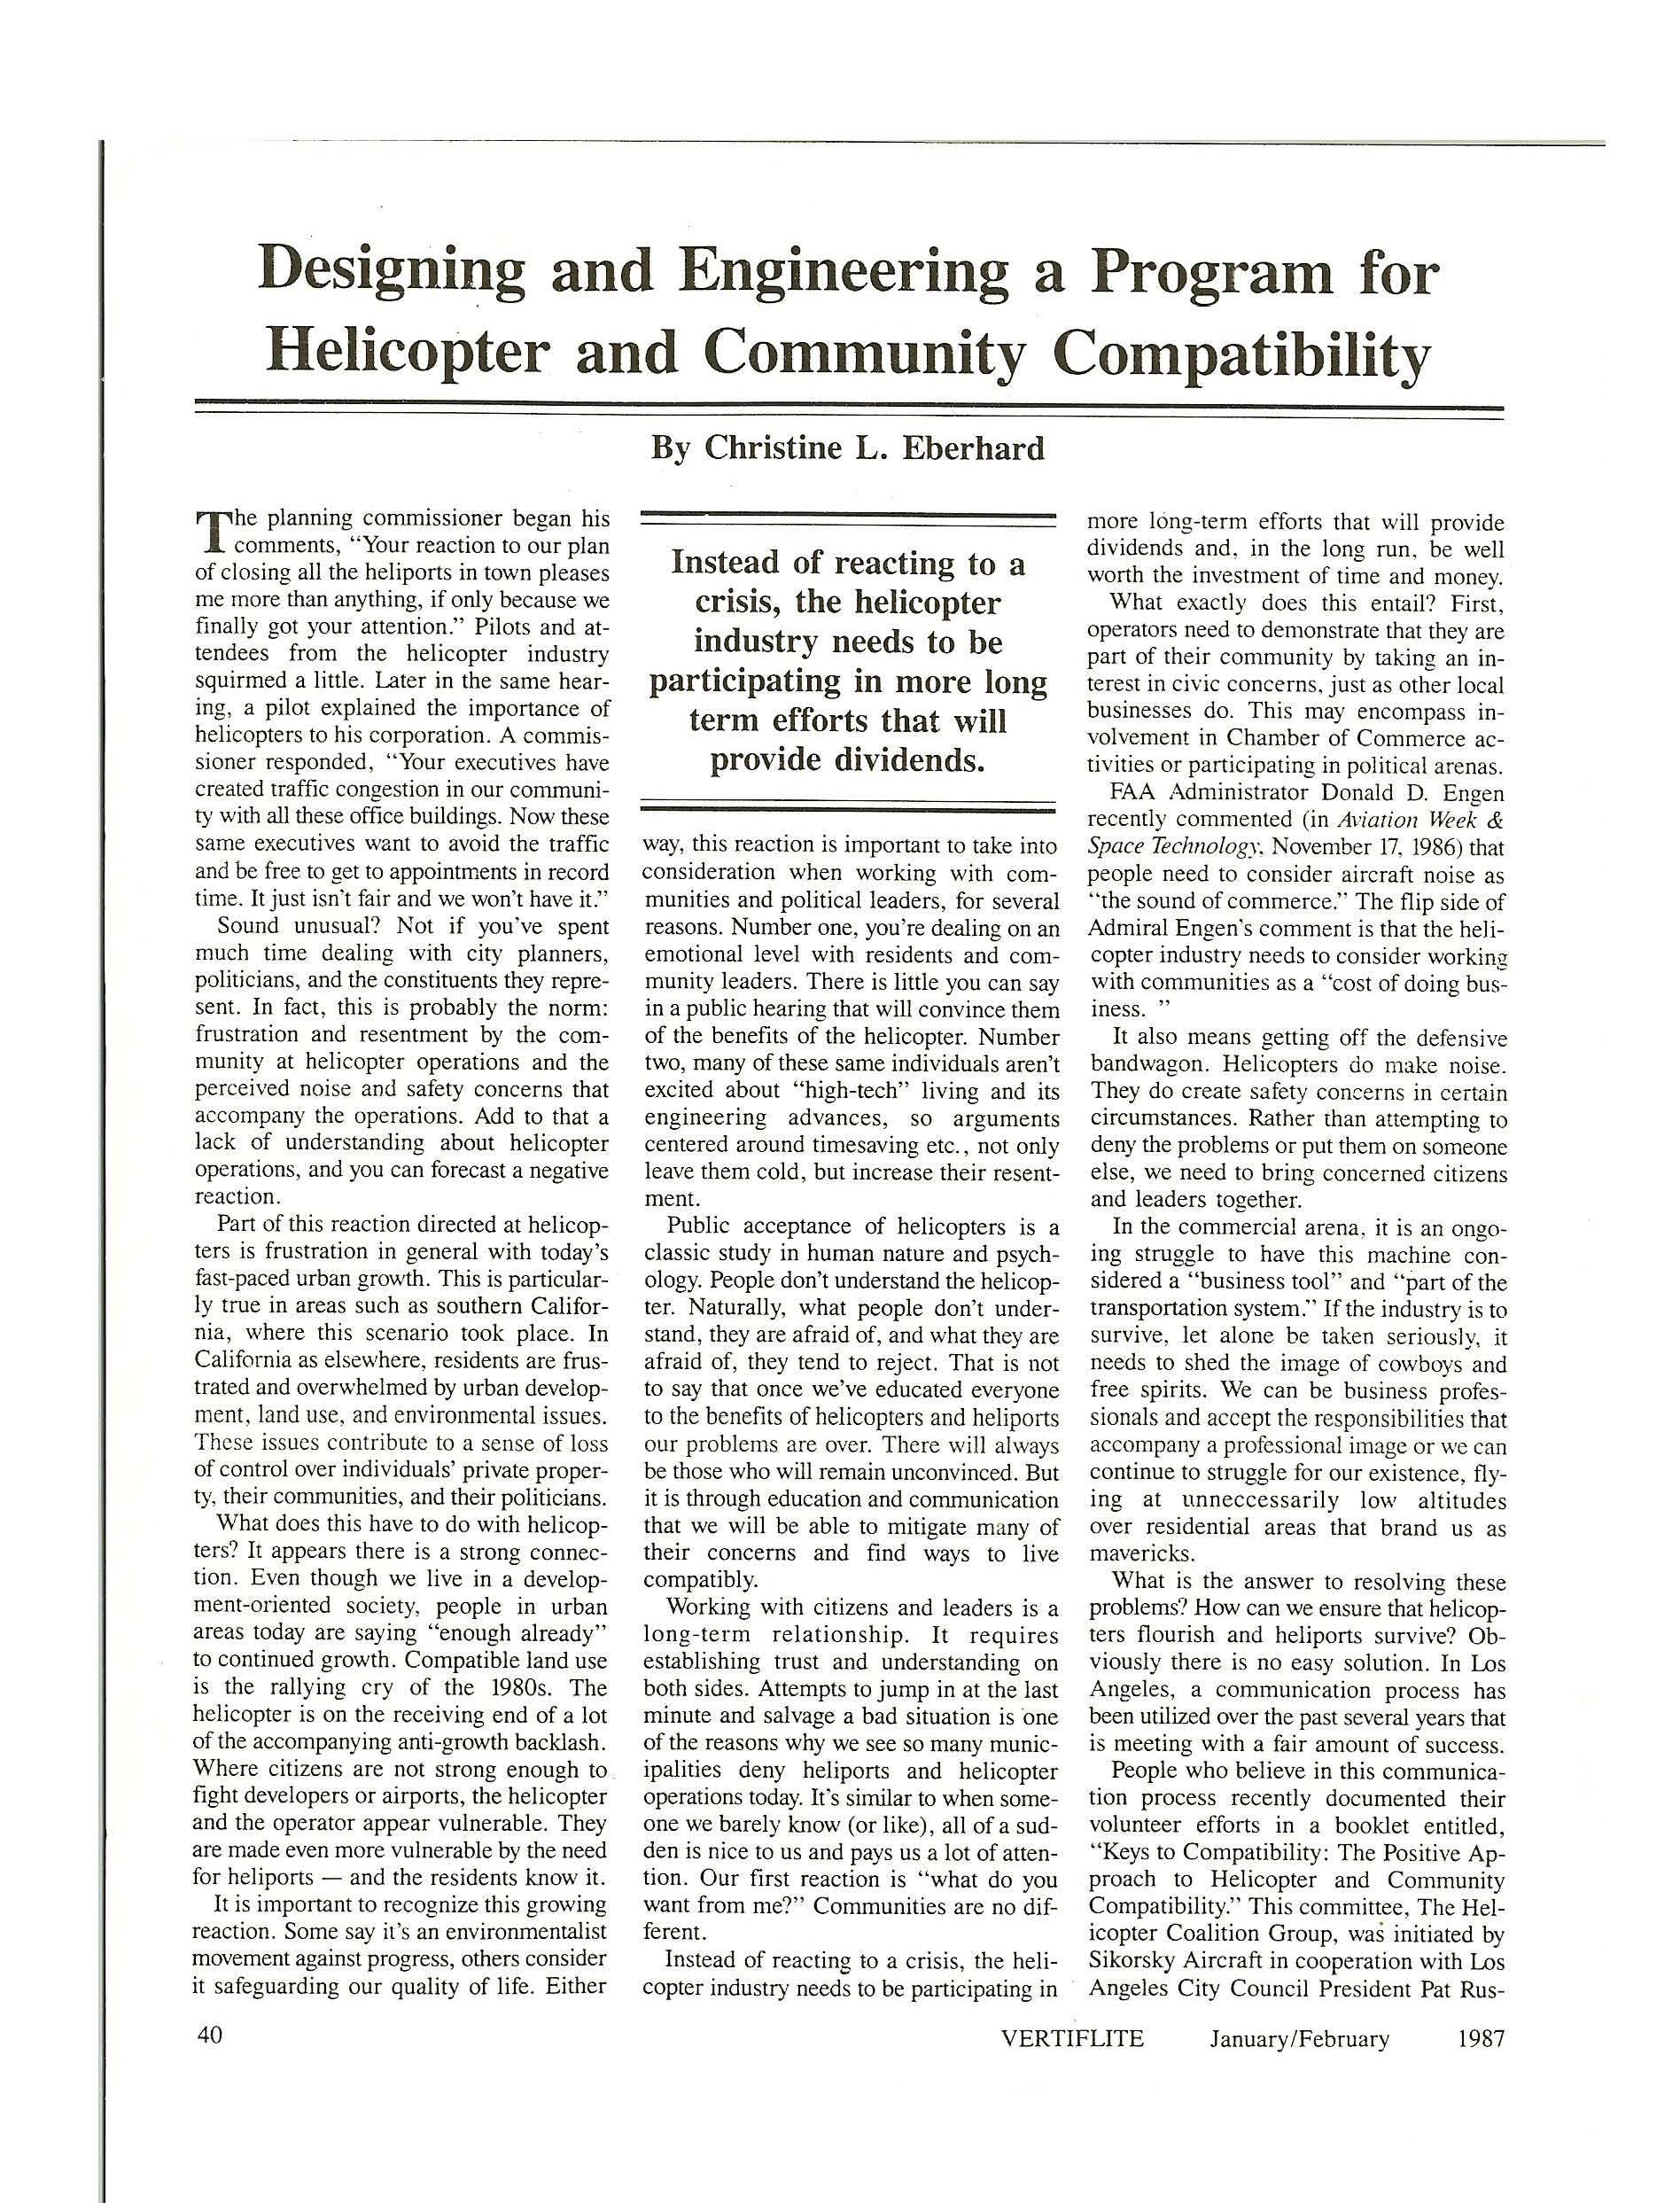 Article on Helo Compatibility page 1